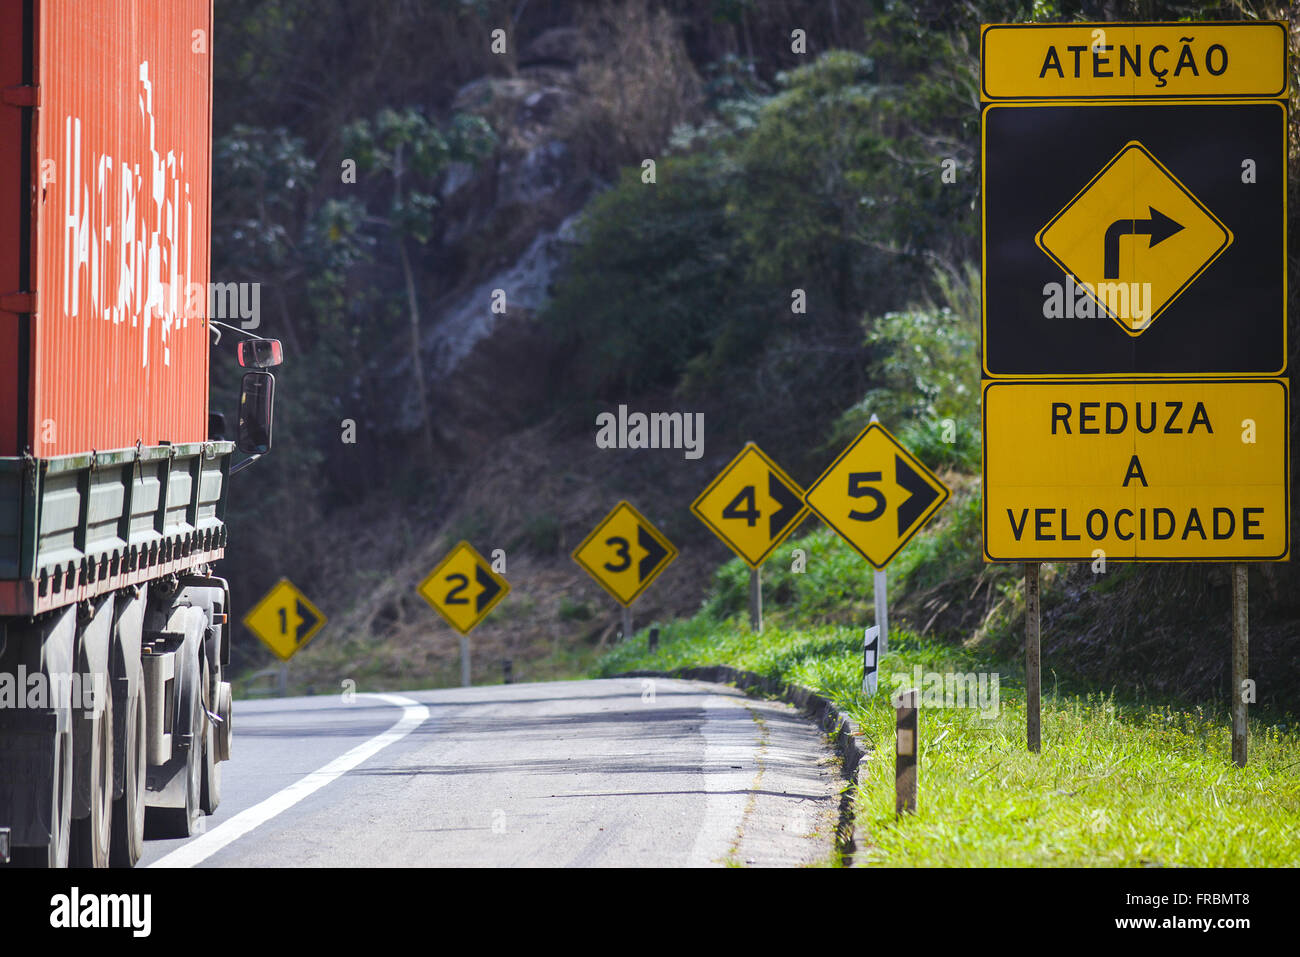 BR-040 Washington Luiz Highway with signs of reduction of signaling speed - Stock Image